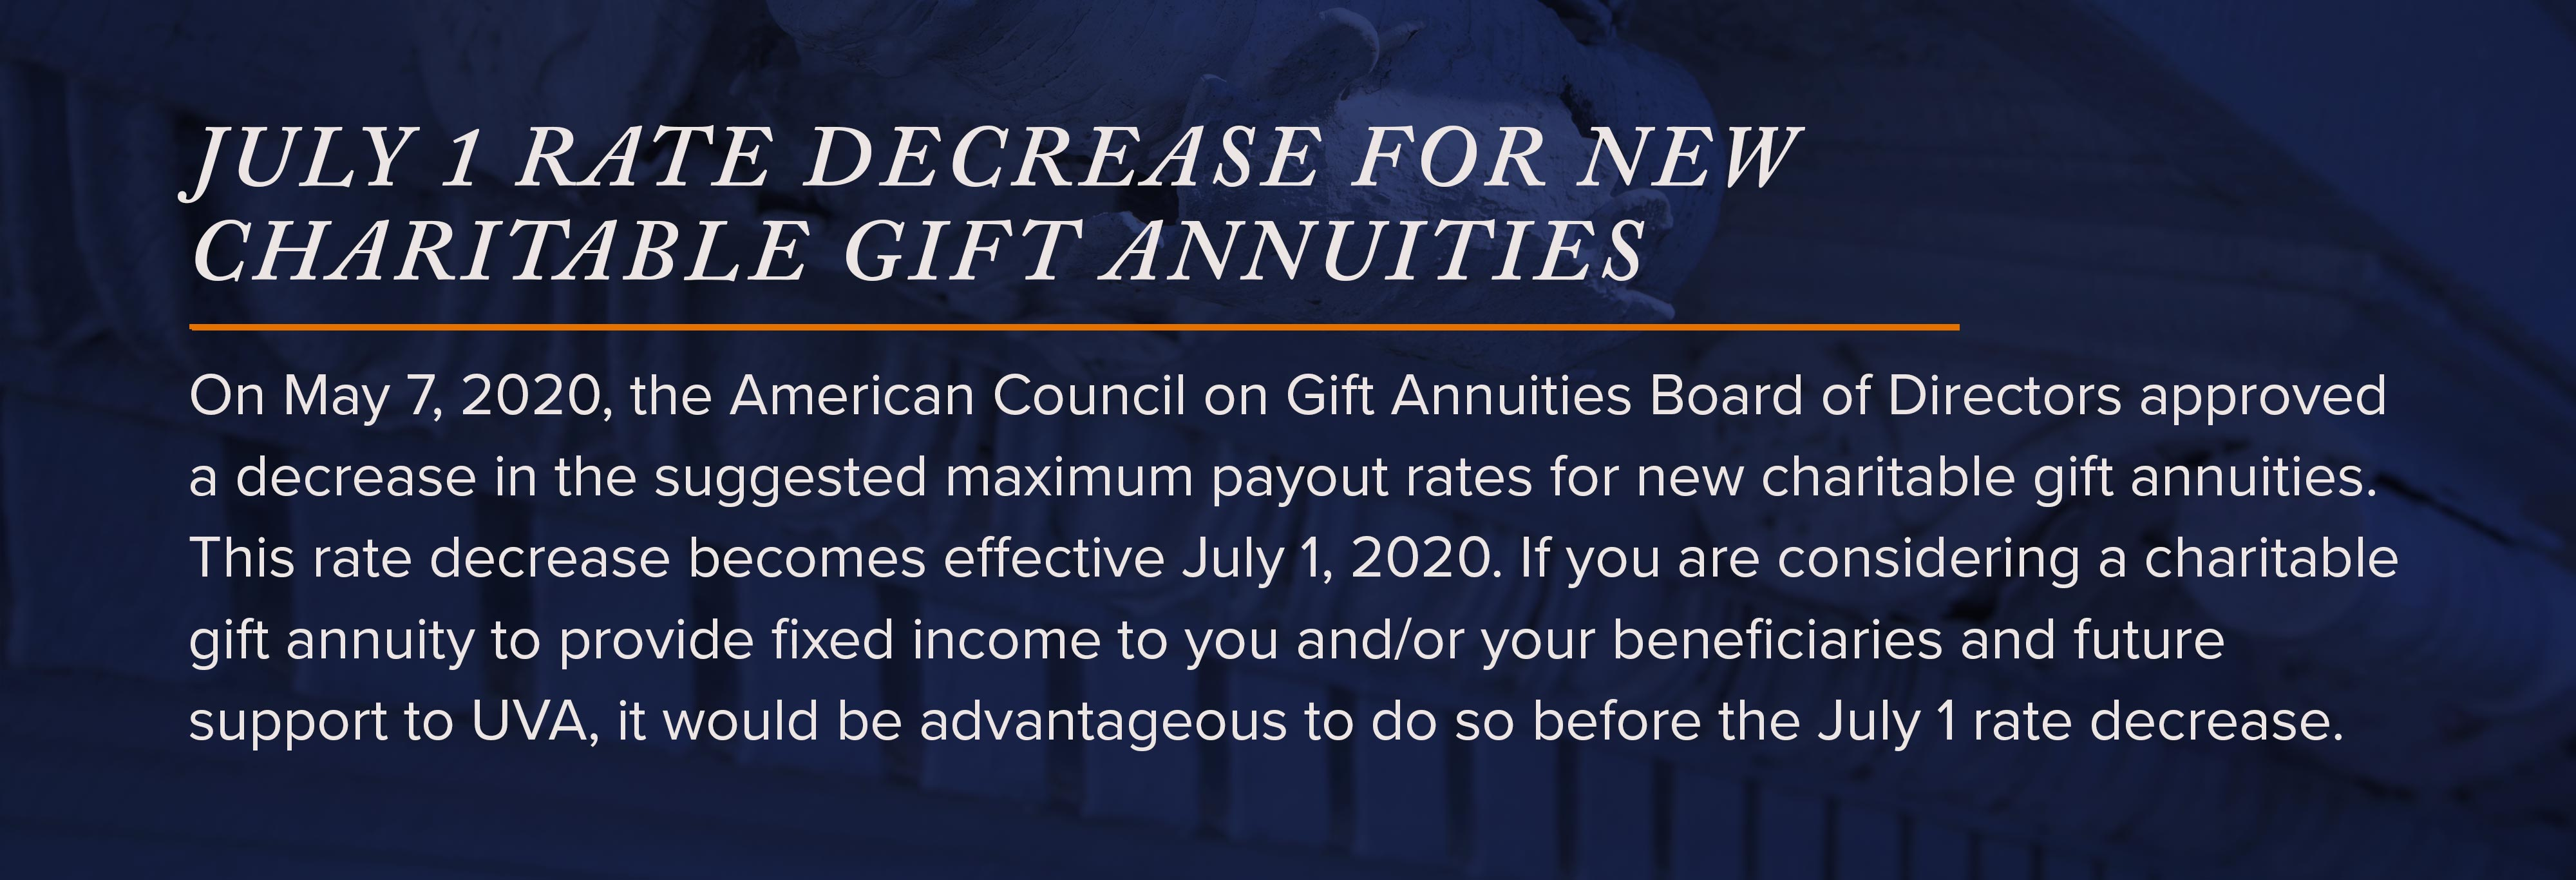 Charitable Gift Annuities | Give to UVA